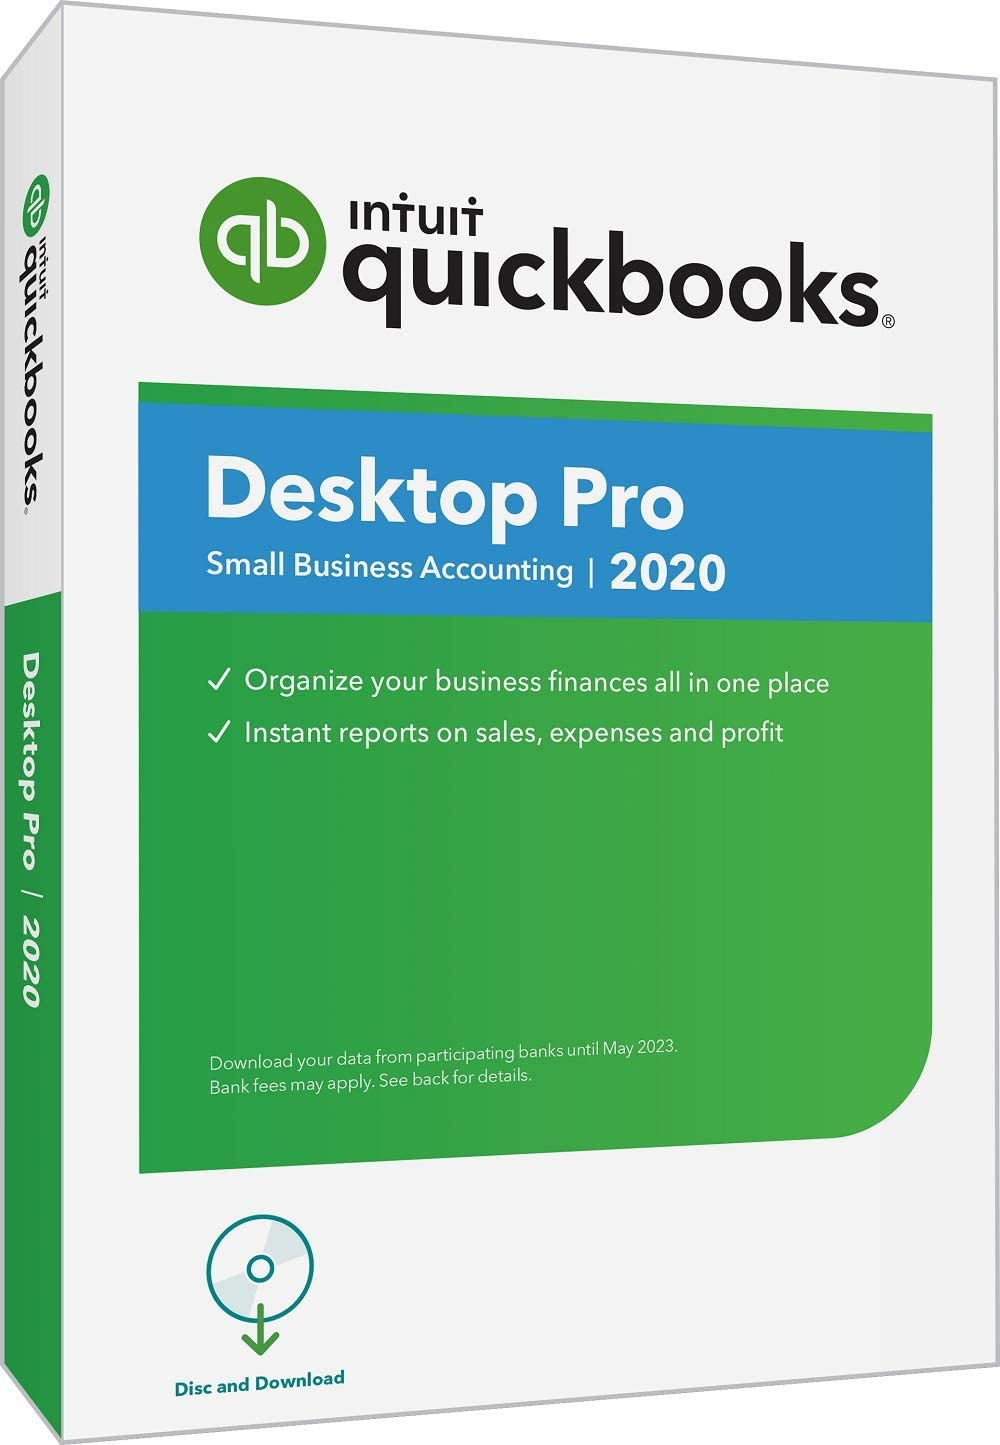 QuickBooks DesktopPro 2020Accounting Software for Small Business with Amazon Exclusive Shortcut Guide [PC Disc]